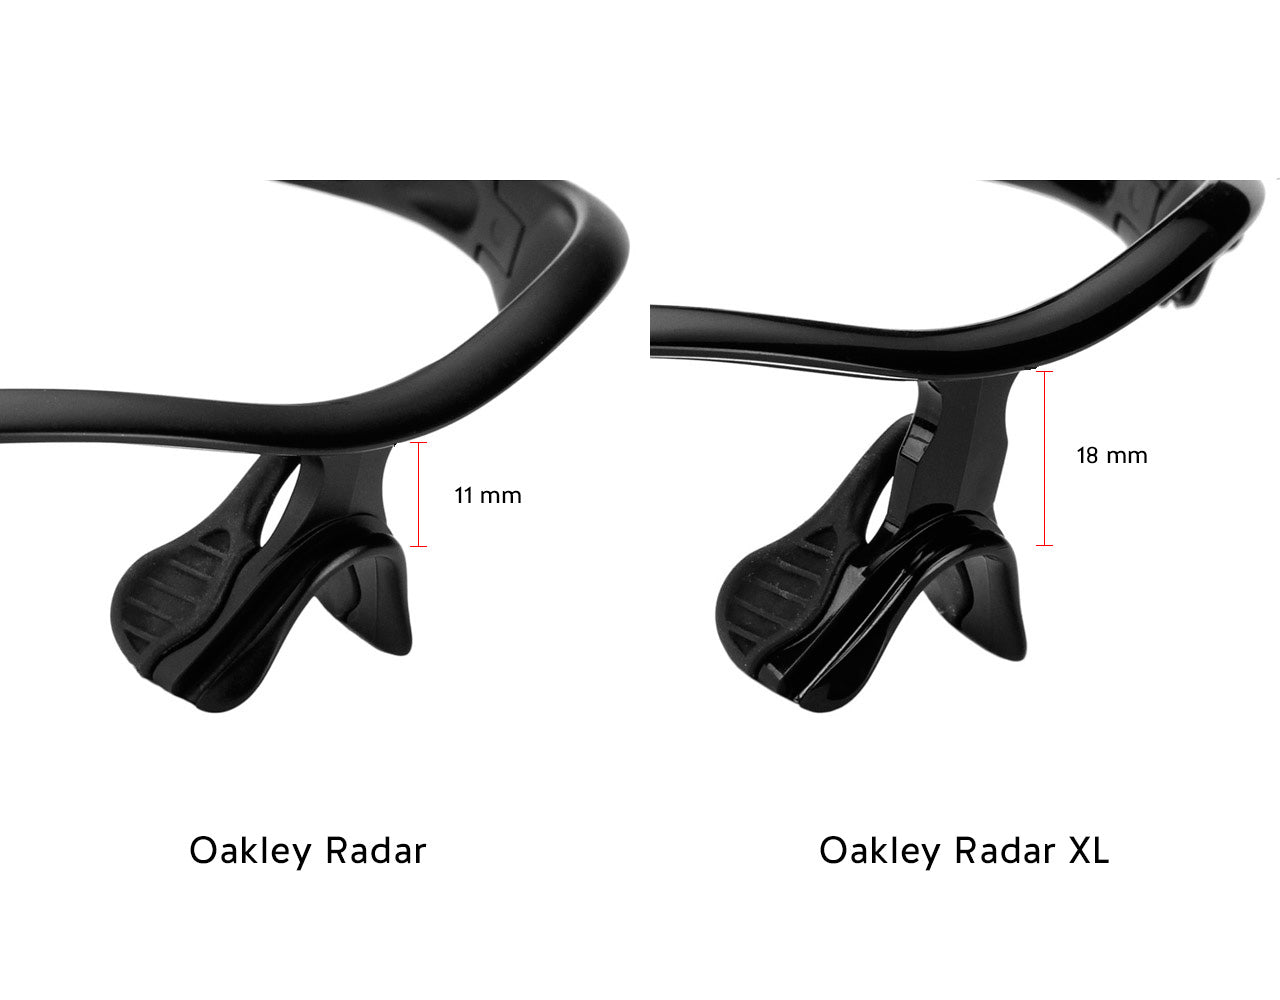 Oakley Radar Nose Bridge Height Comparison